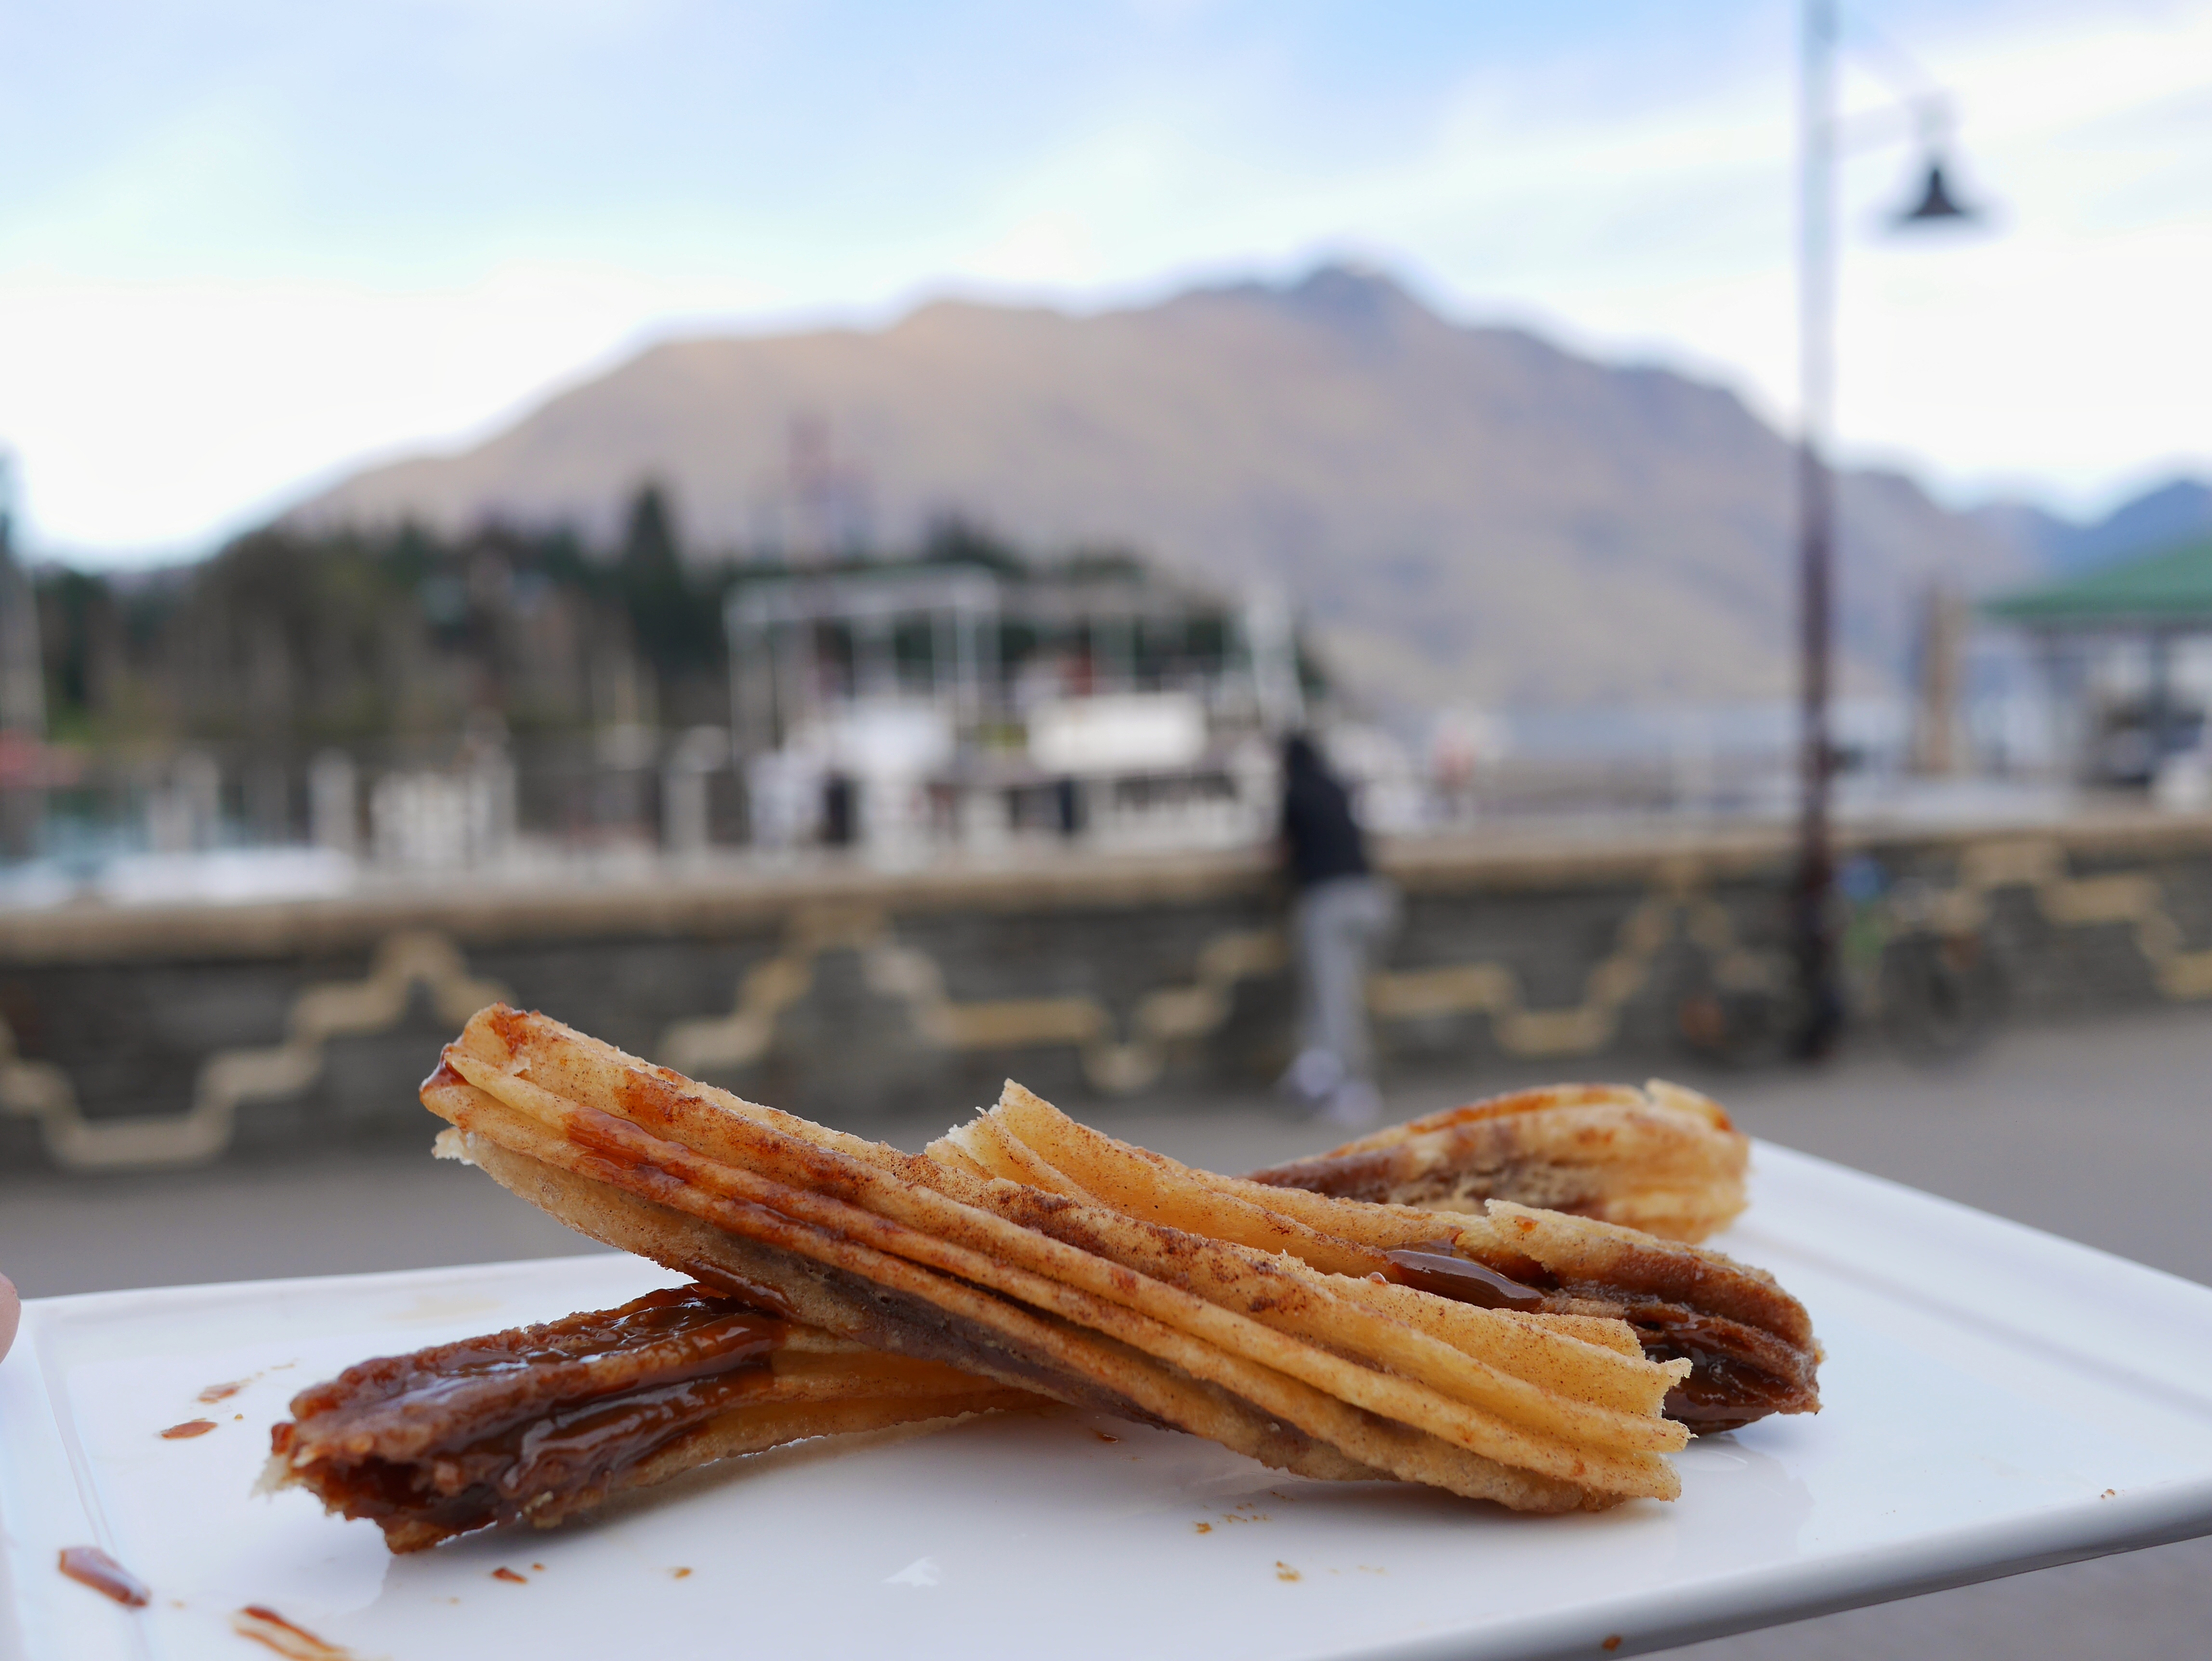 Patagonia Chocolates Queenstown dulce de leche stuffed churros thesweetwanderlust.com